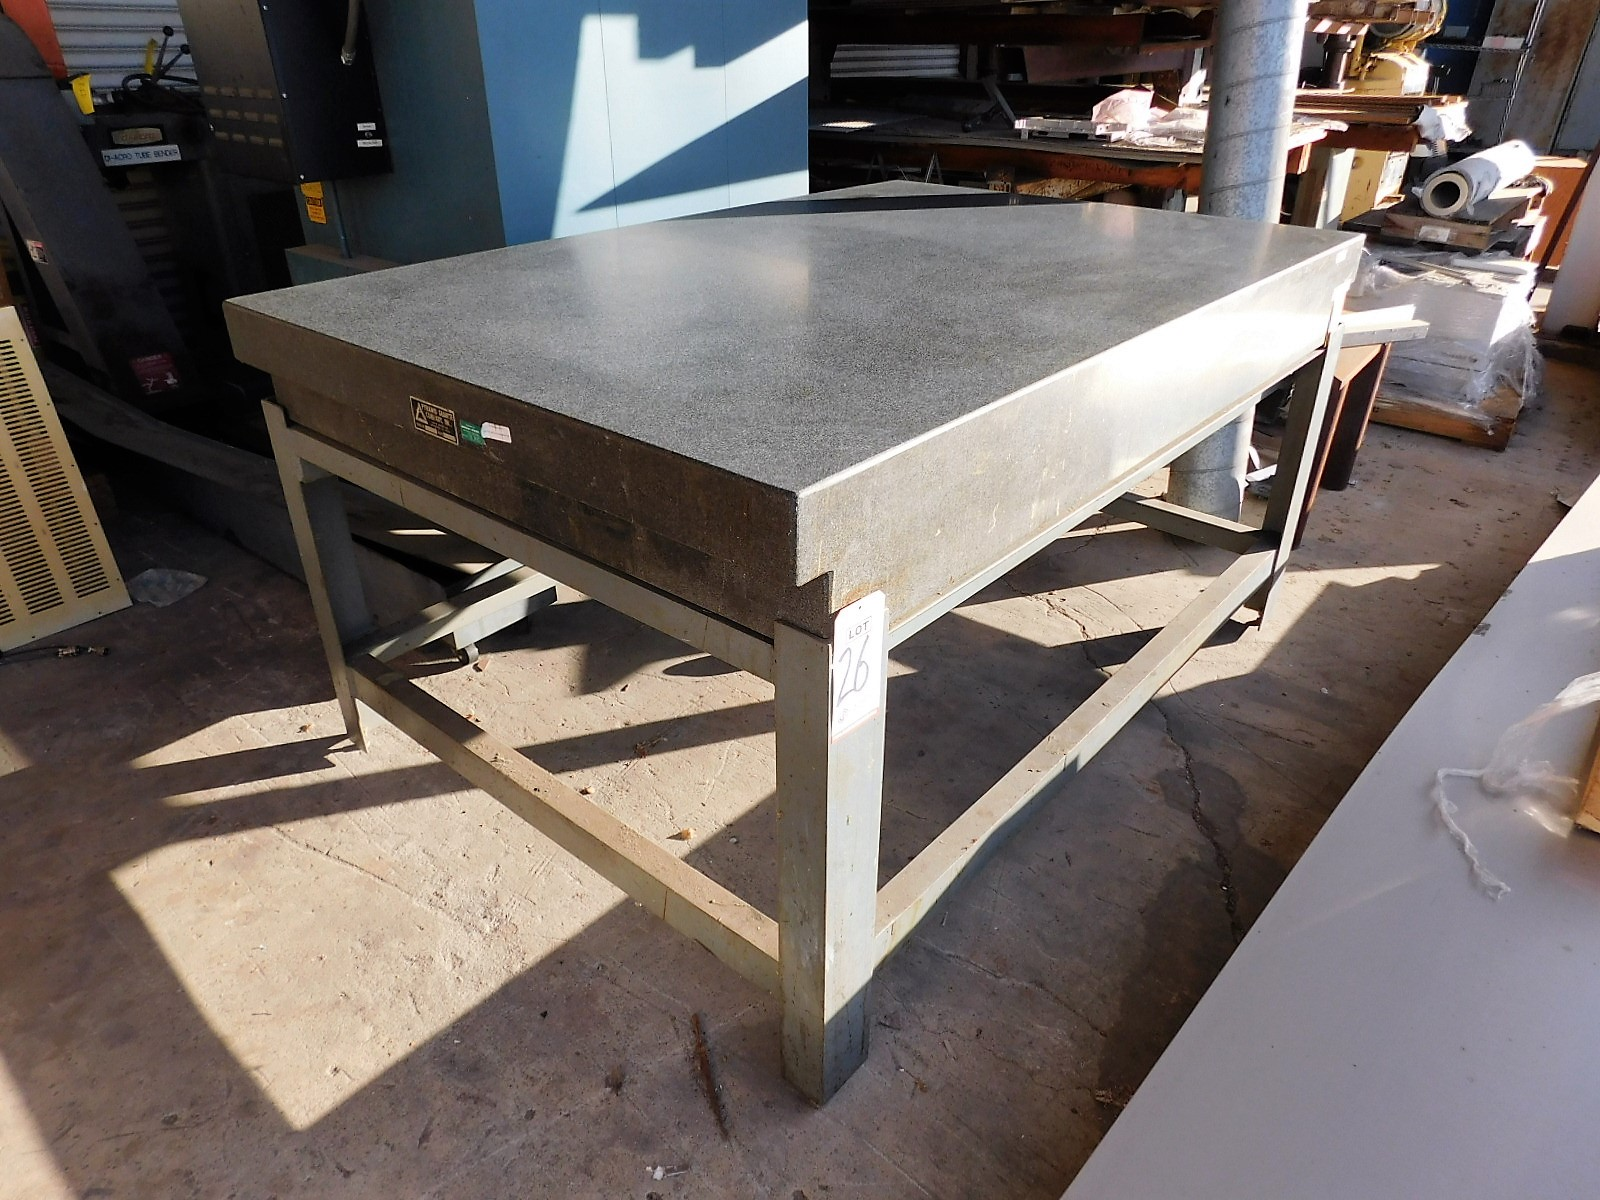 "Lot 26 - PYRAMID SURFACE PLATE, 4' X 6' X 8-1/4"", GRADE A, S/N 5990, STEEL STAND"